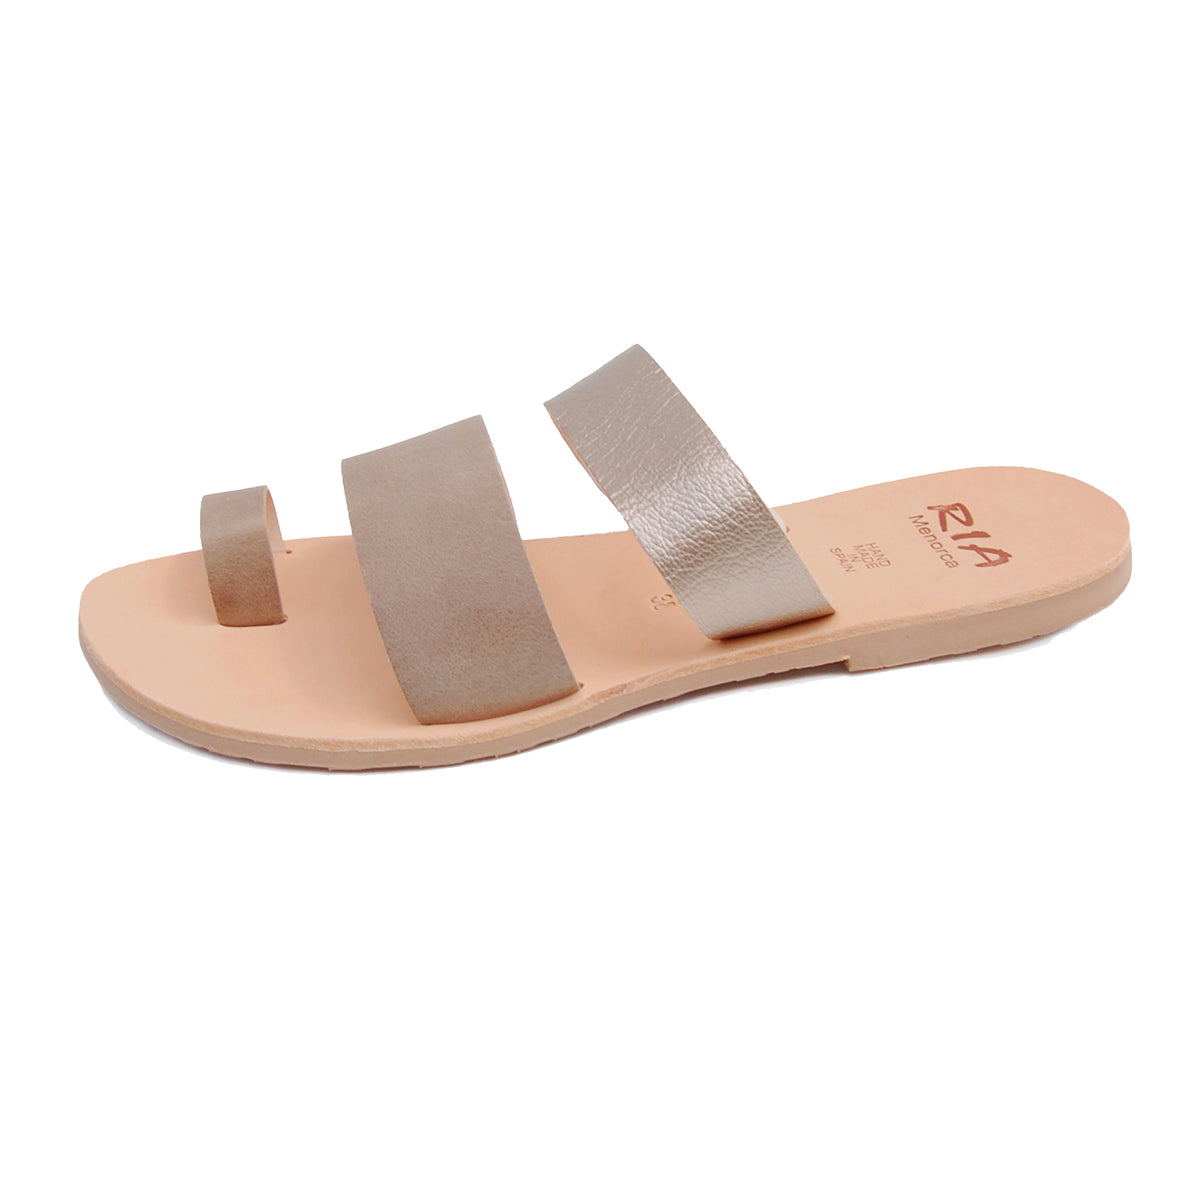 Rico Spanish Slides in Bronze and Putty